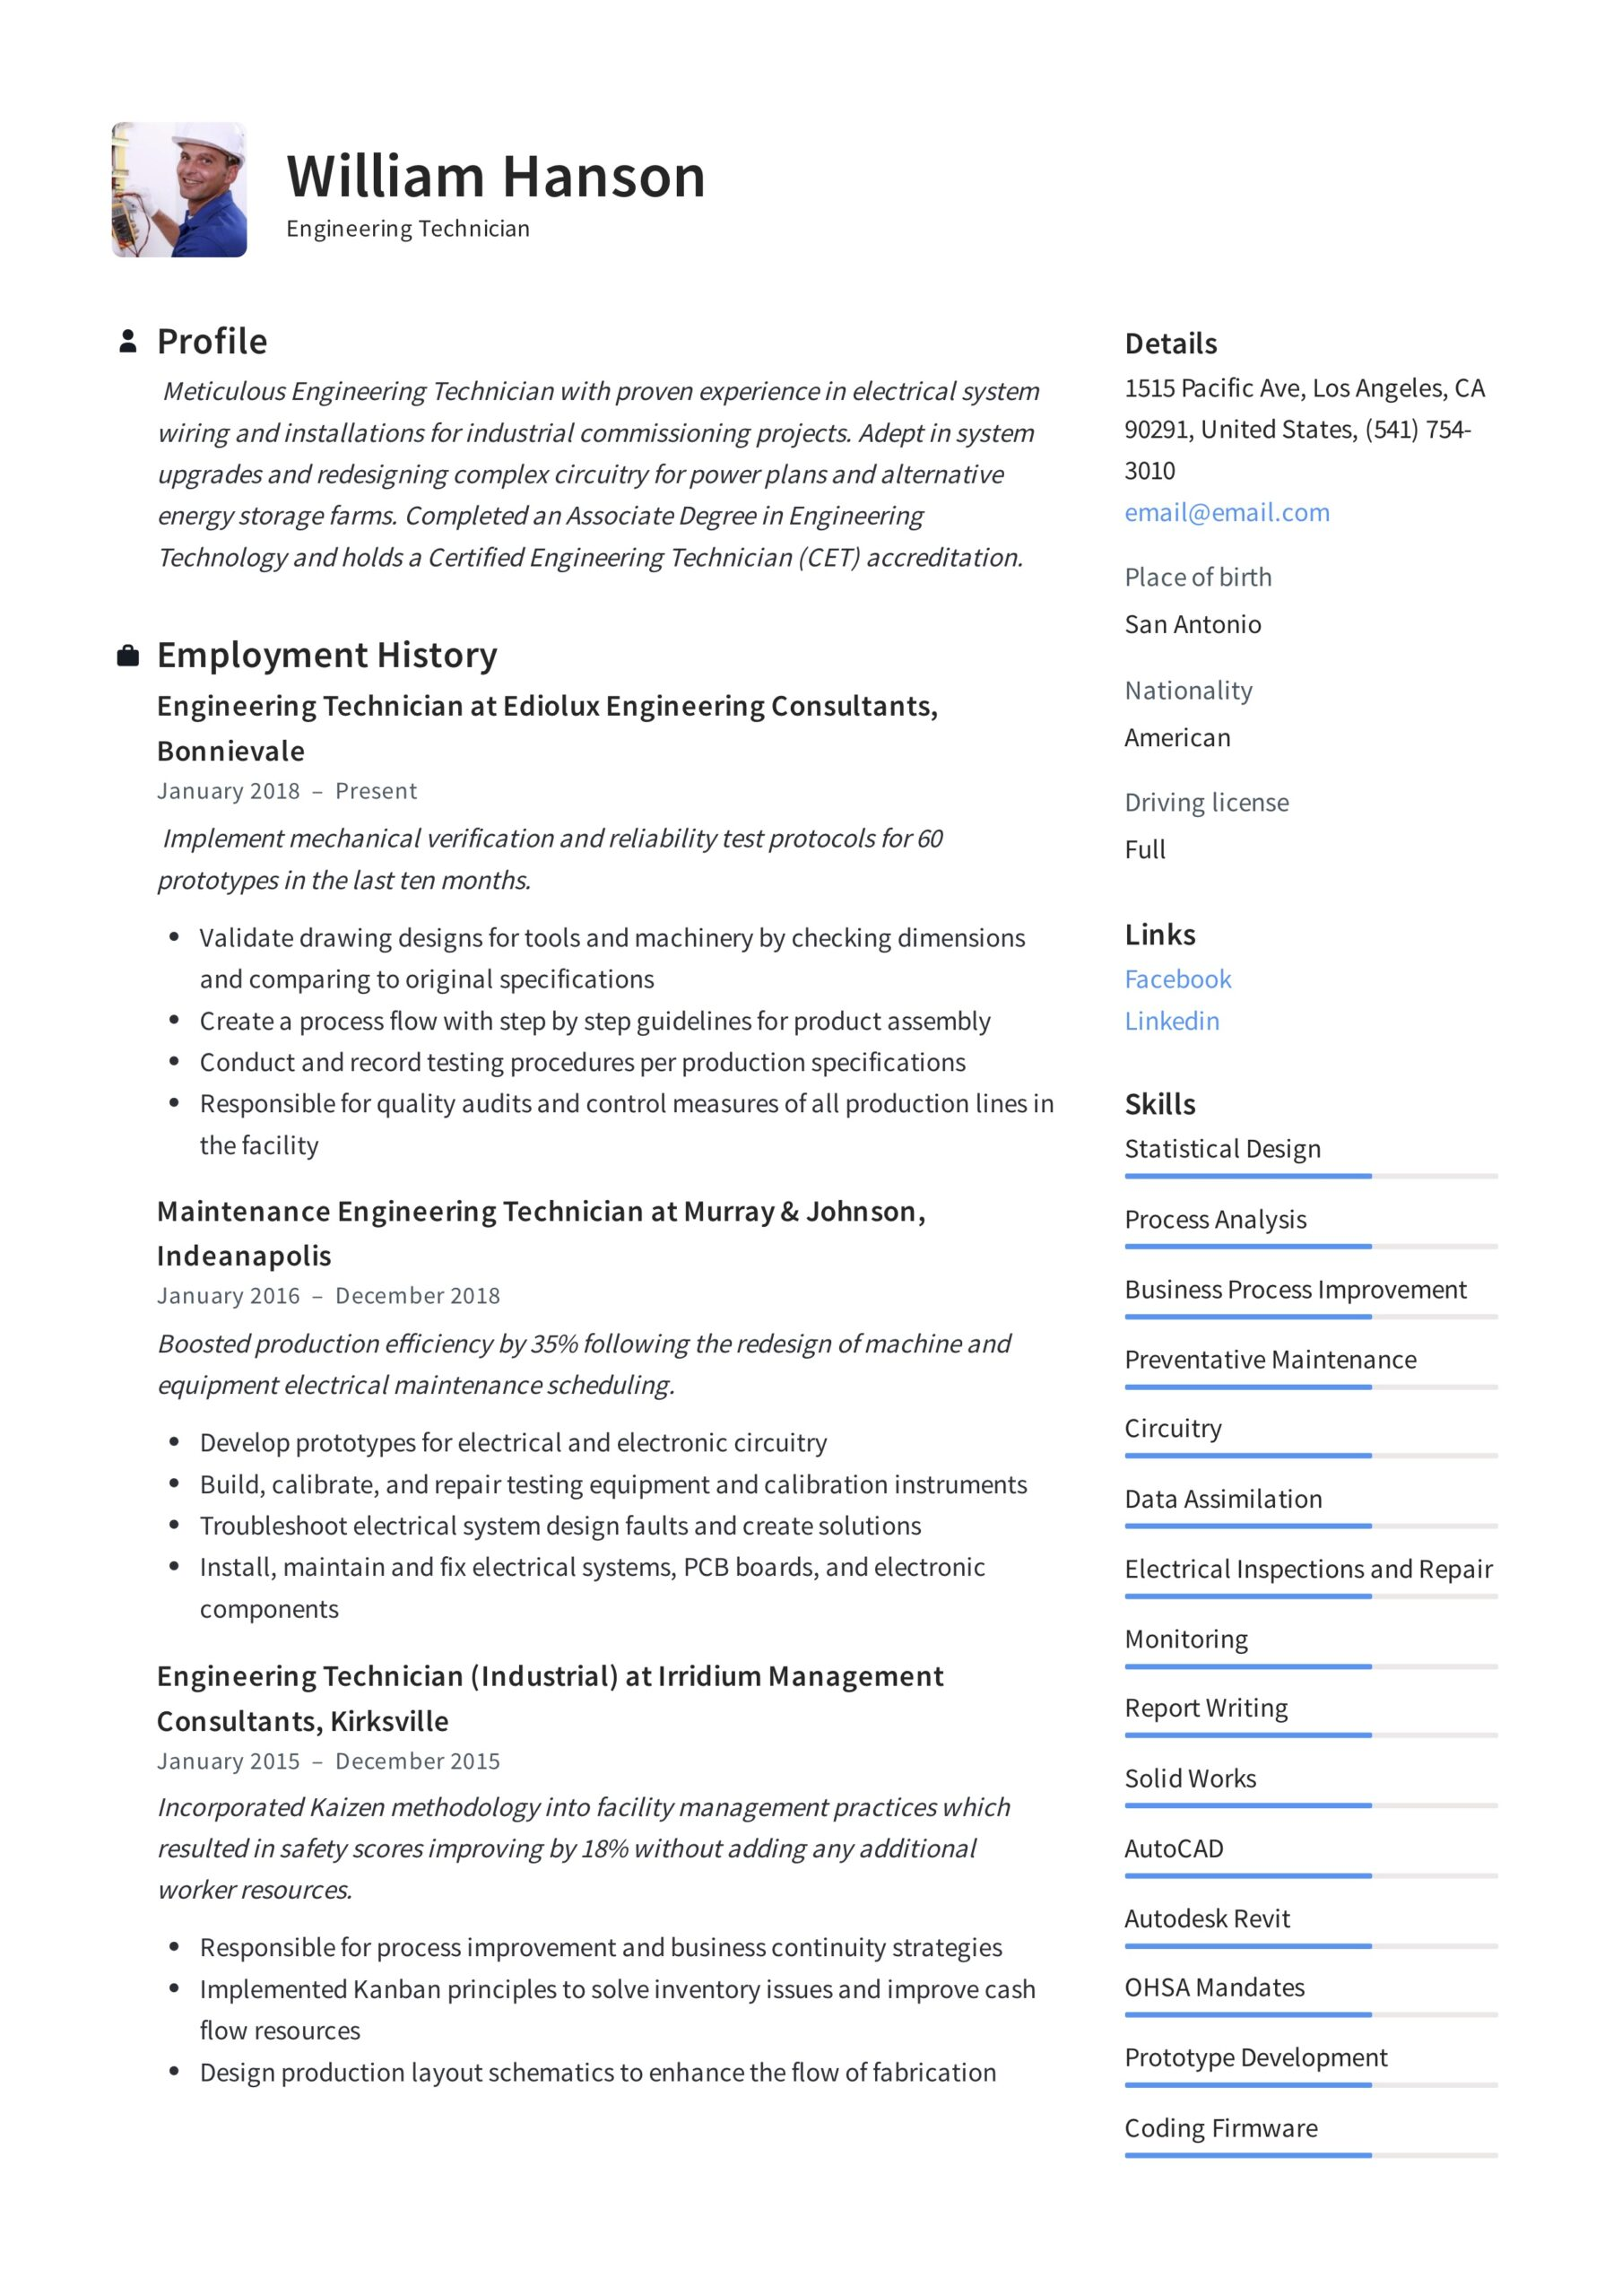 engineering technician resume writing guide templates electronic template rasmussen Resume Electronic Technician Resume Template